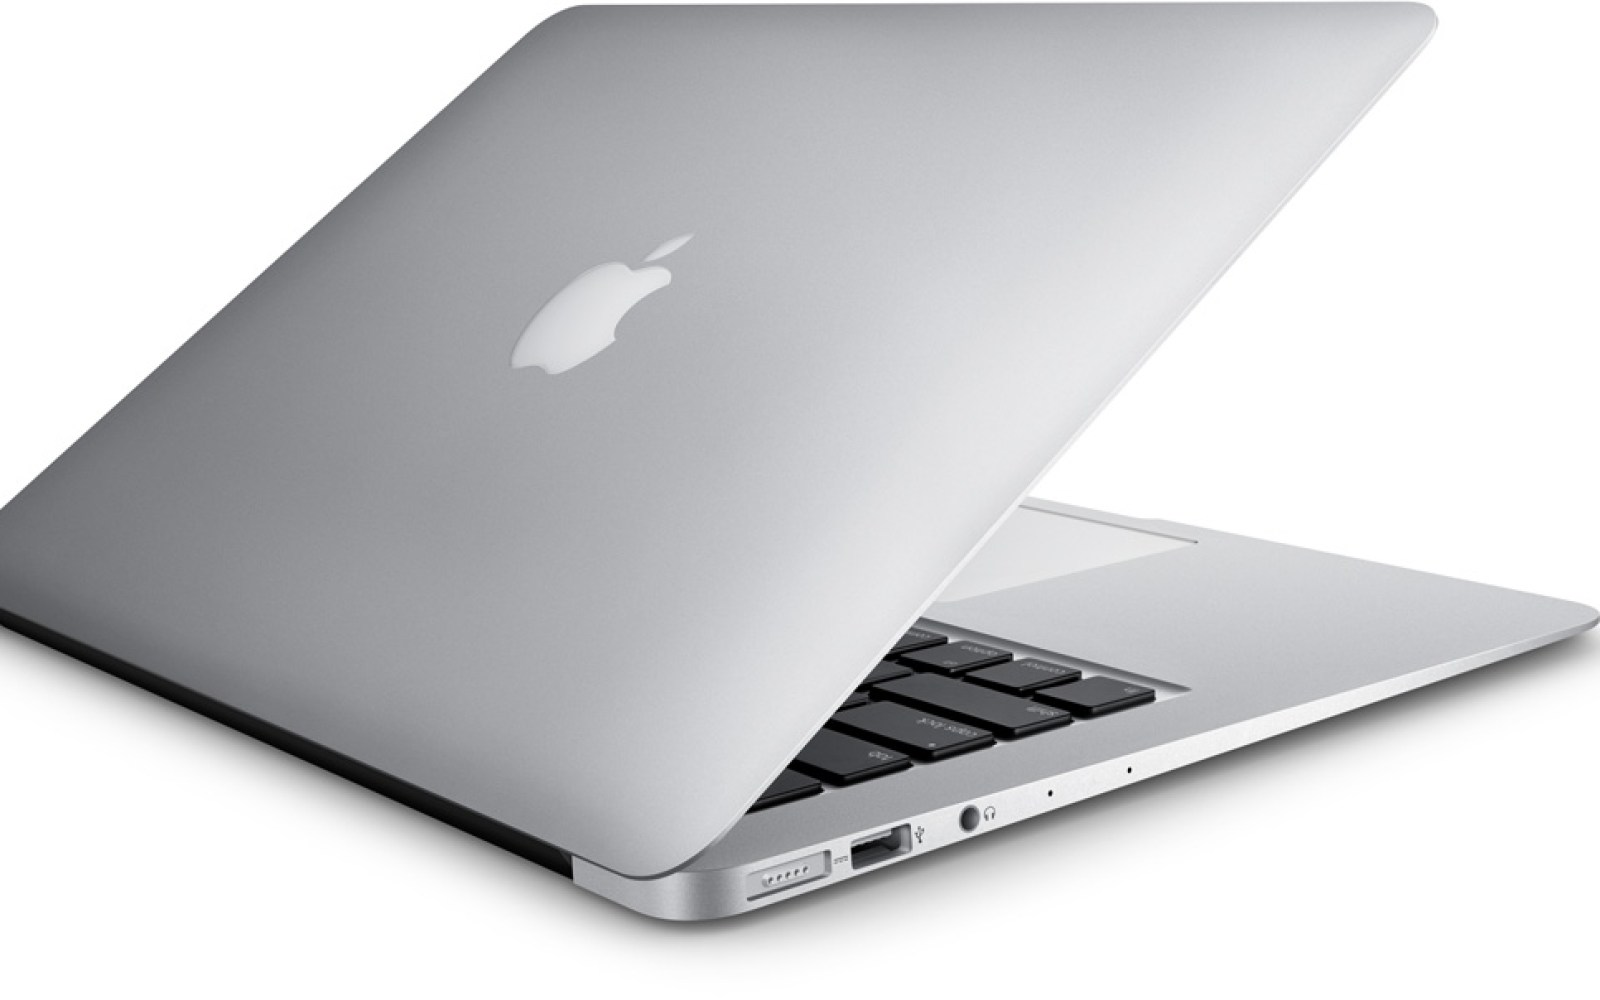 Take $150 off early 2014 MacBook Airs (requires .edu email), deals from $750 (up to 17% off)